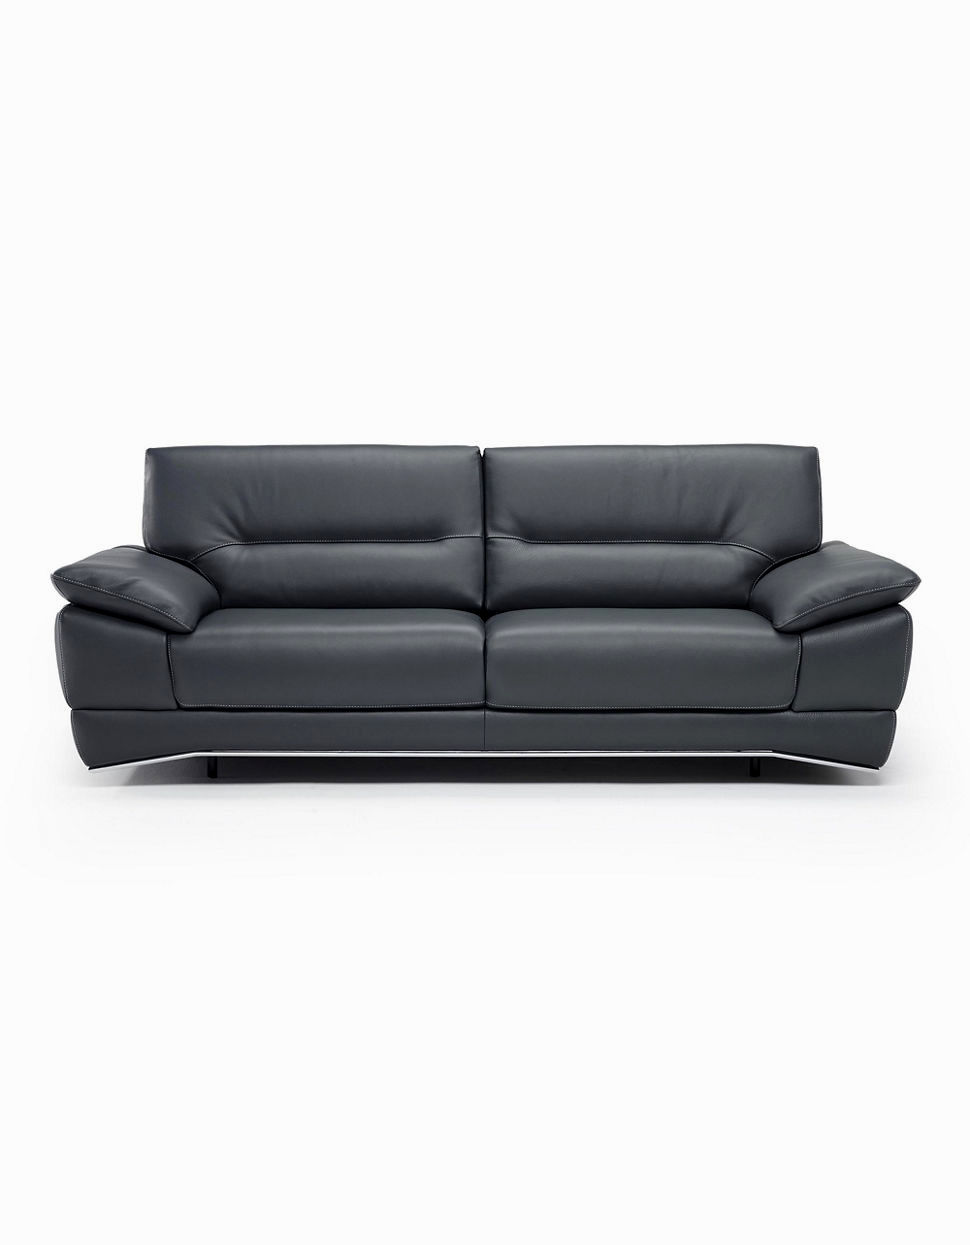 wonderful lee industries sofa inspiration-Latest Lee Industries sofa Photograph